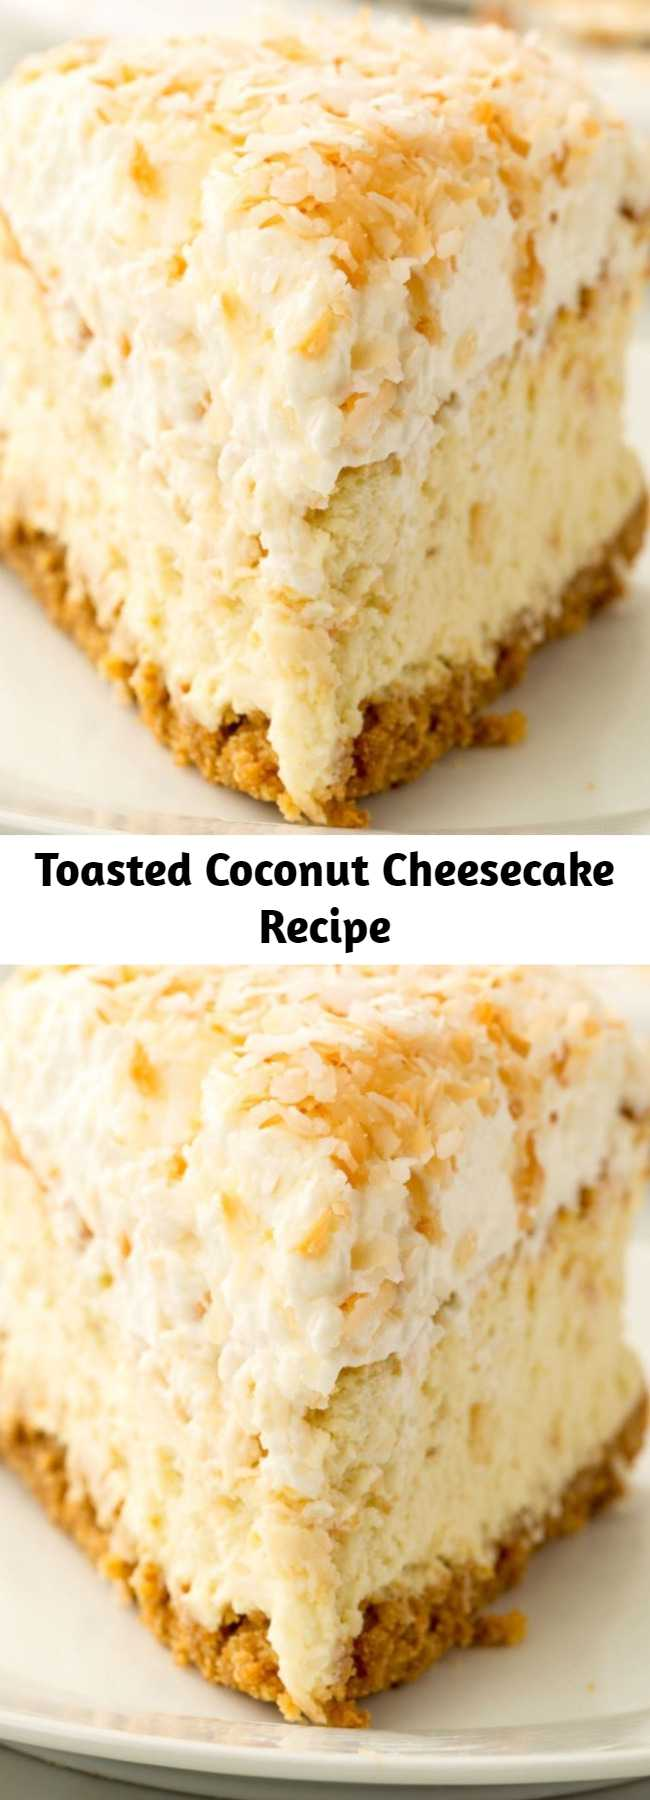 Toasted Coconut Cheesecake Recipe - Looking for a coconut dessert recipe? This Coconut Cheesecake is the best. If you love coconut, you'll go coco loco over this decadently creamy, slightly sweet dessert.